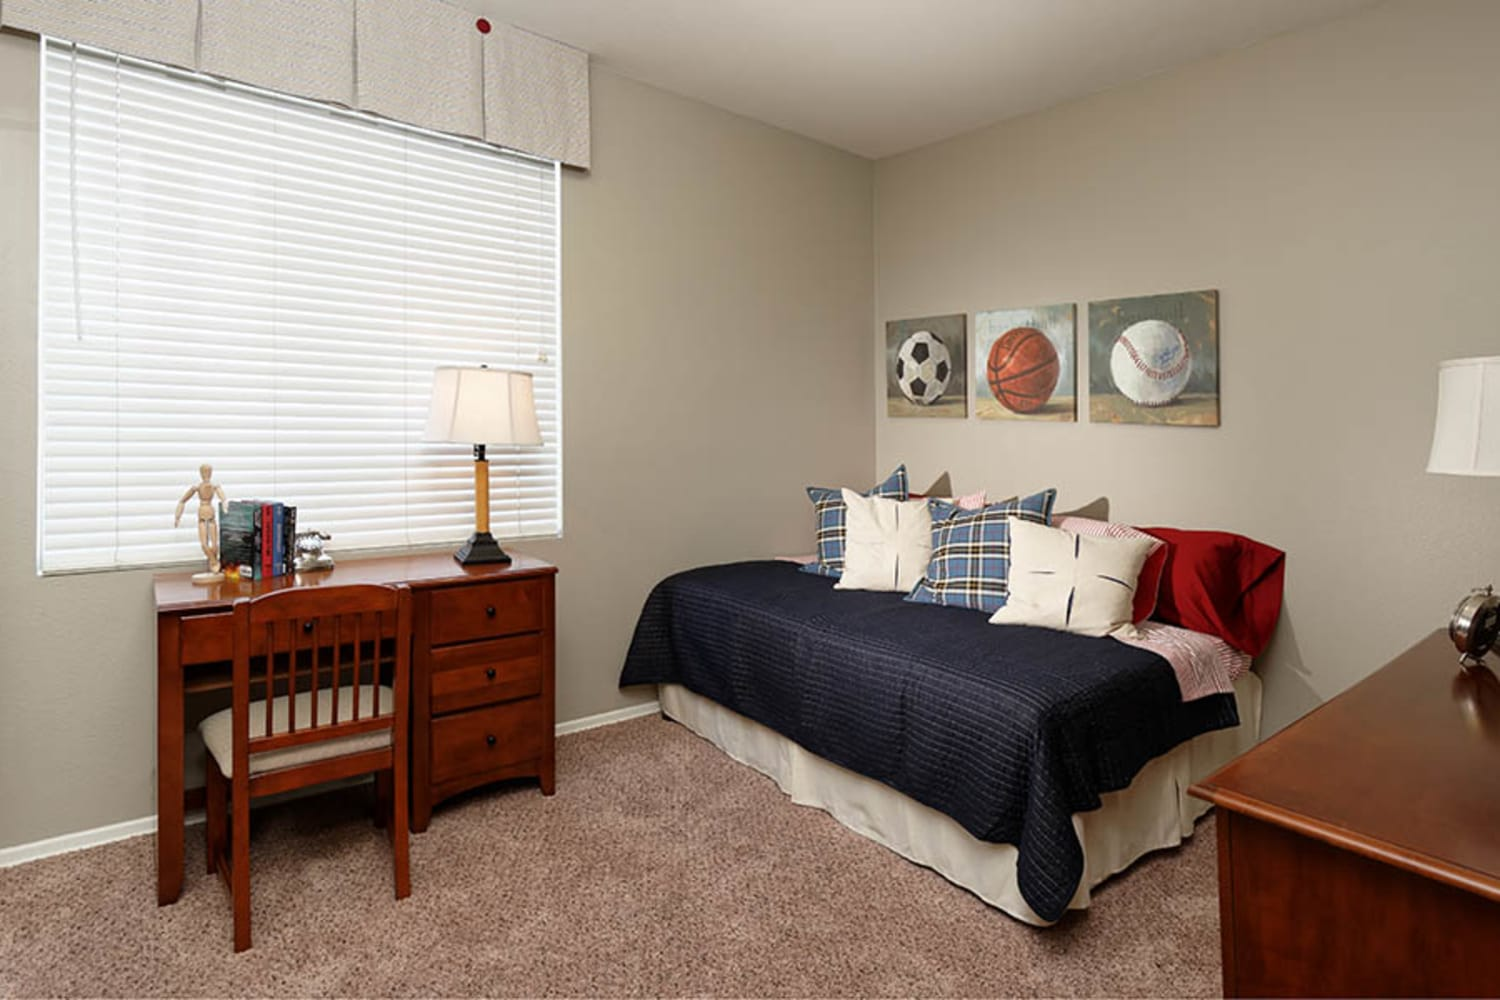 Camino Real offers spacious bedrooms in Rancho Cucamonga, California